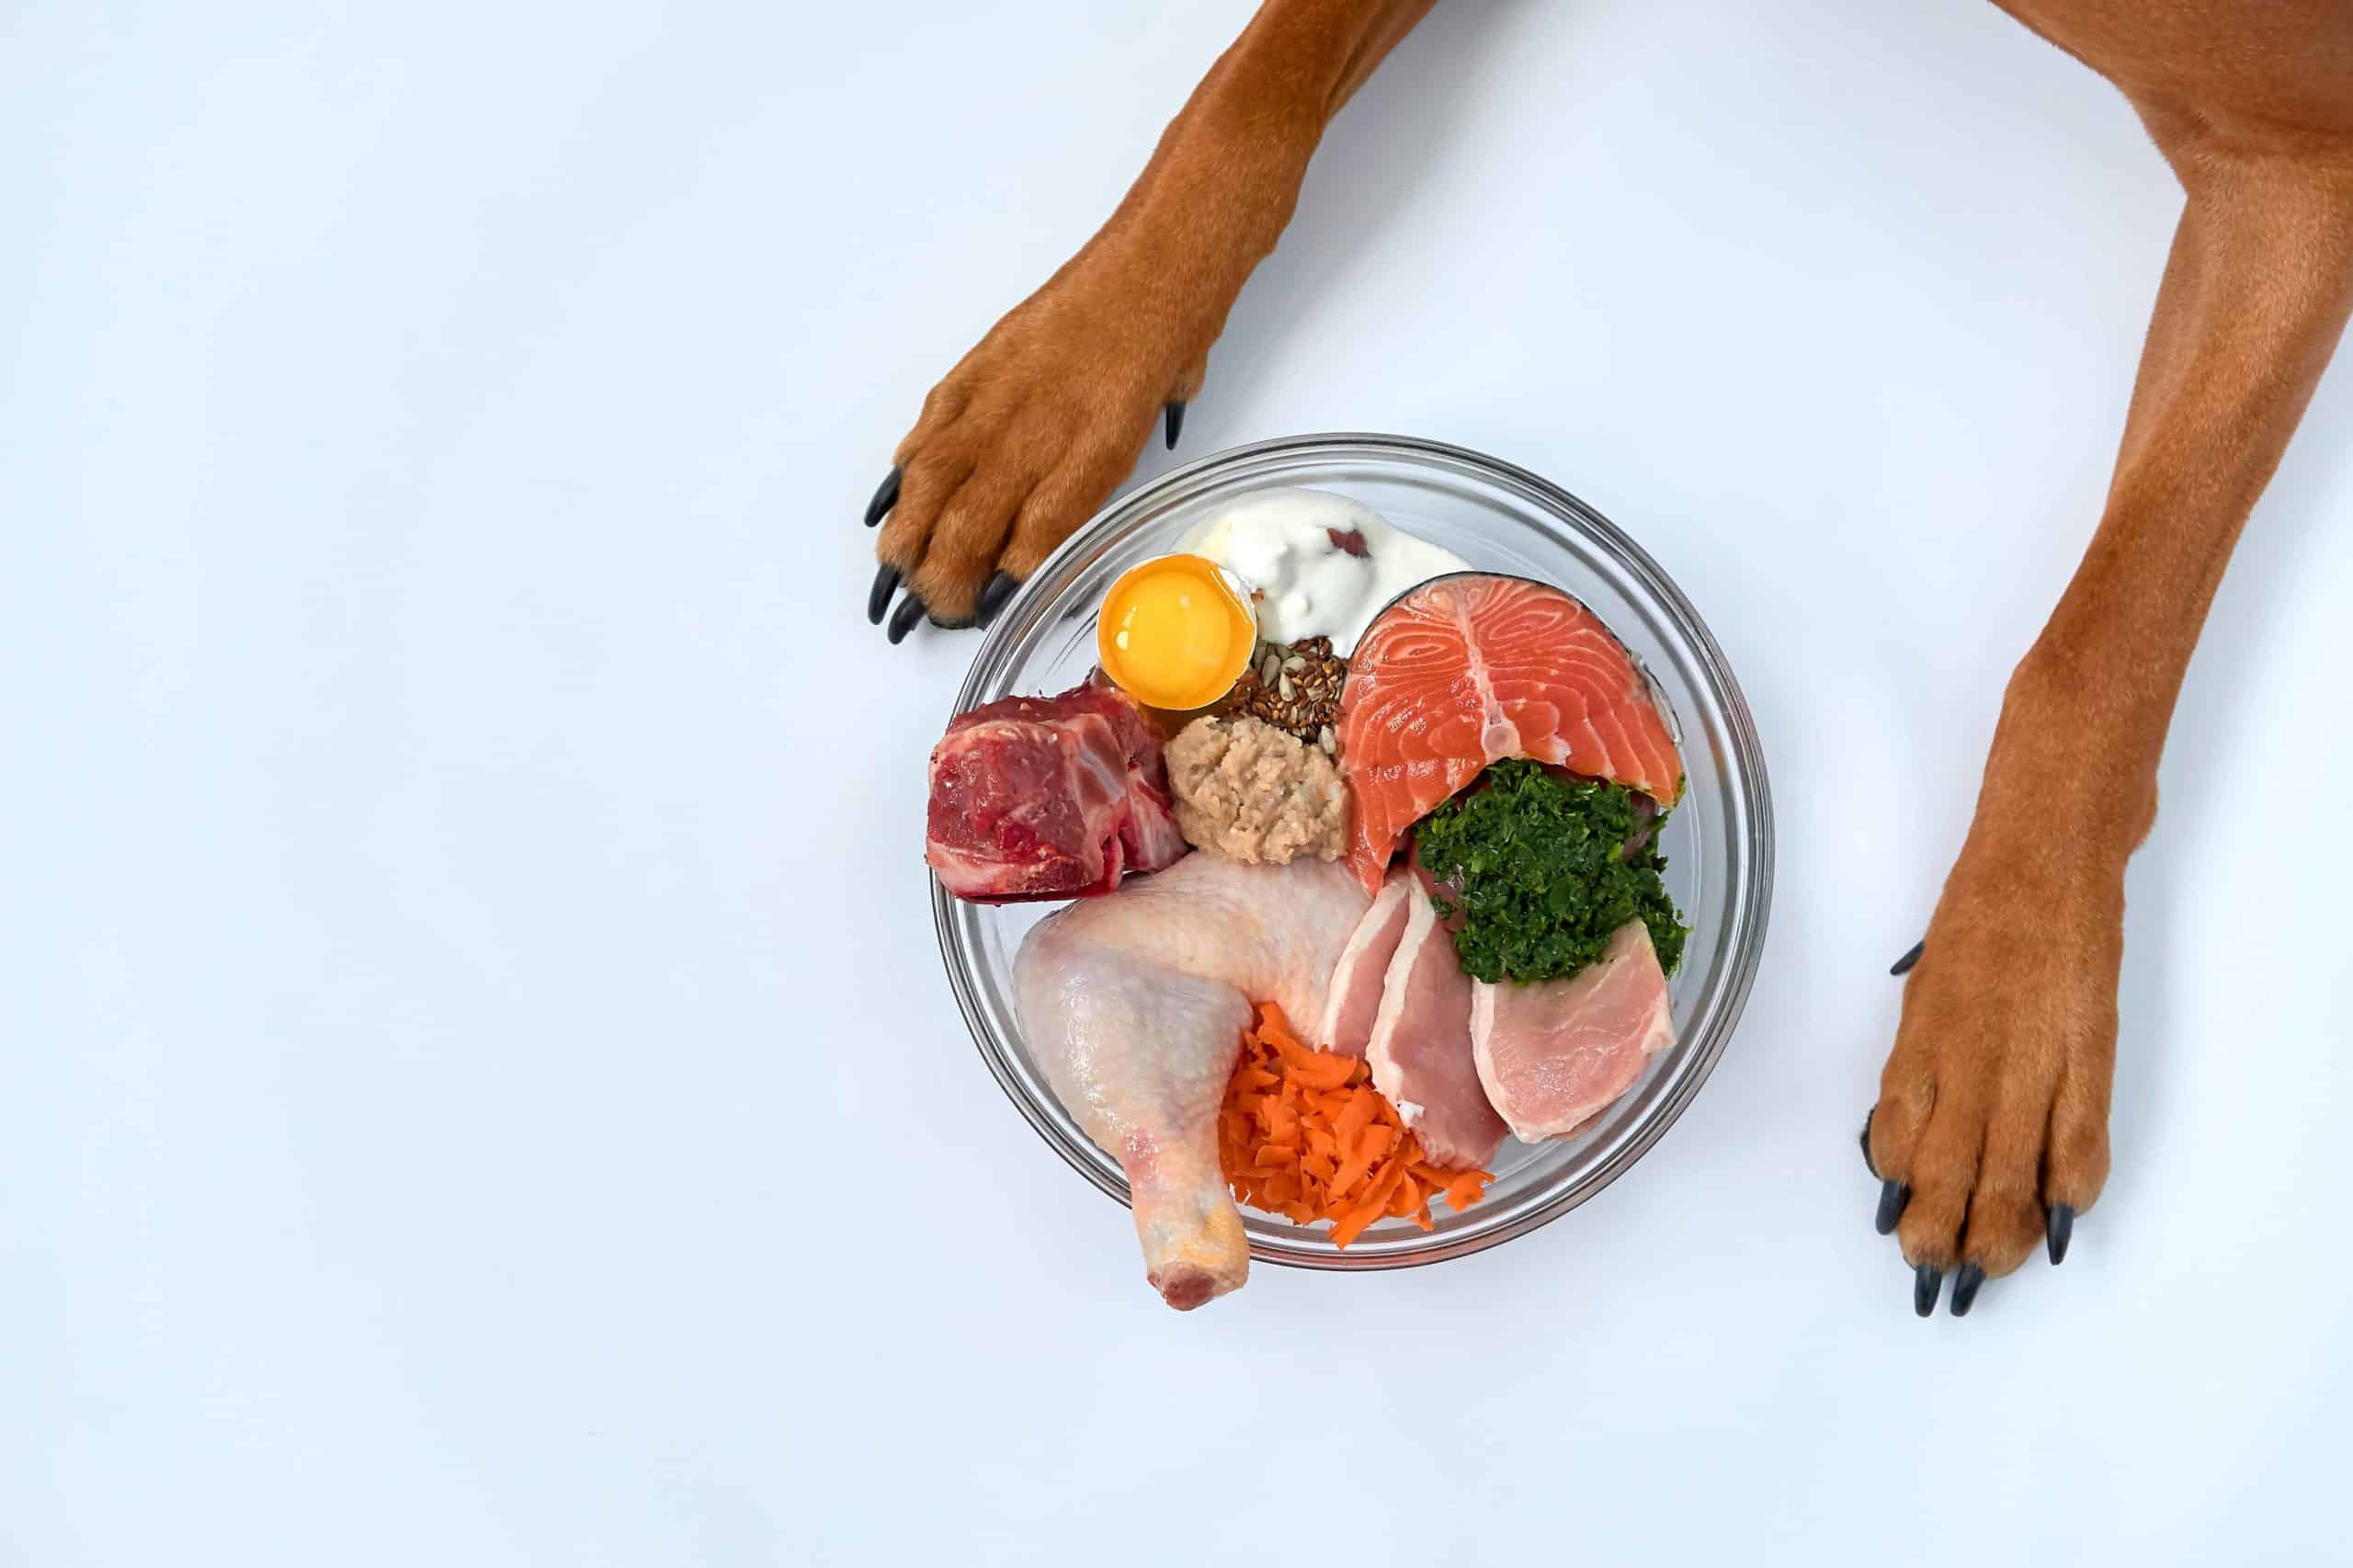 Nutrient-dense dog food contains a balanced amount of animal protein, fats, and trace elements.